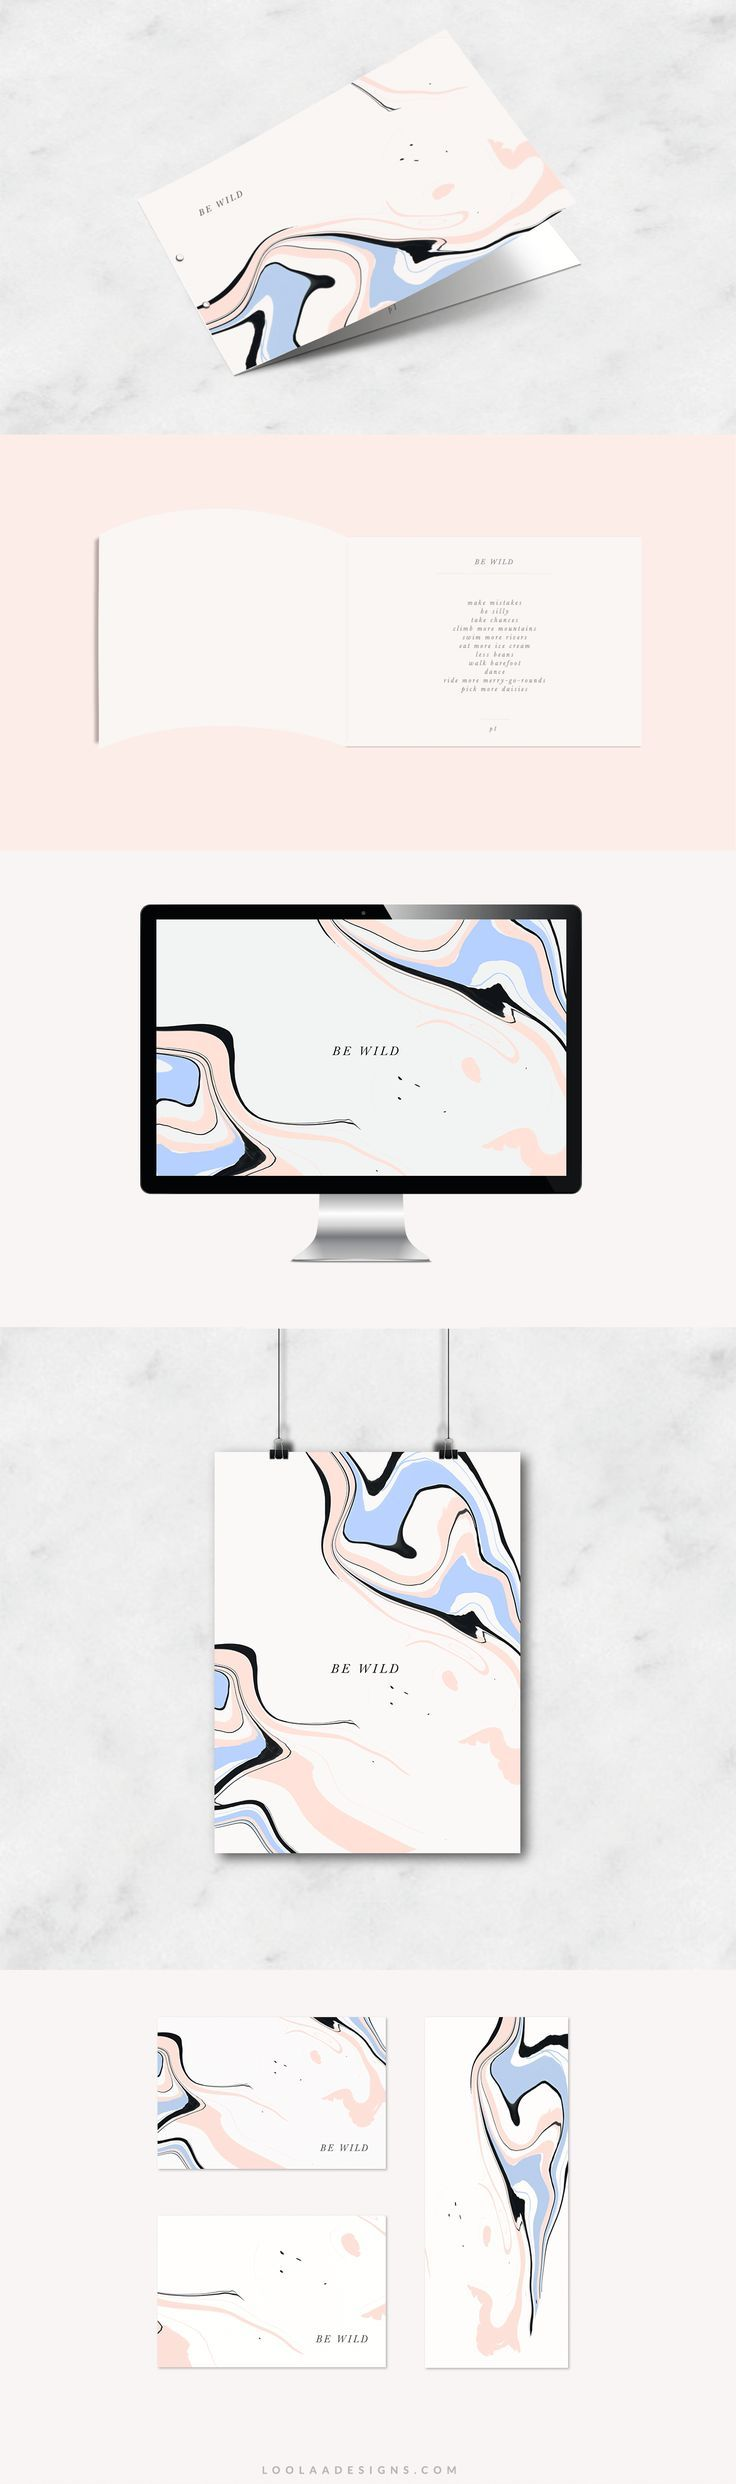 Stationary liquid effect branding baby pink + baby blue + grey + marble graphics-loolaadesigns.com. If you like UX, design, or design thinking, check out theuxblog.com